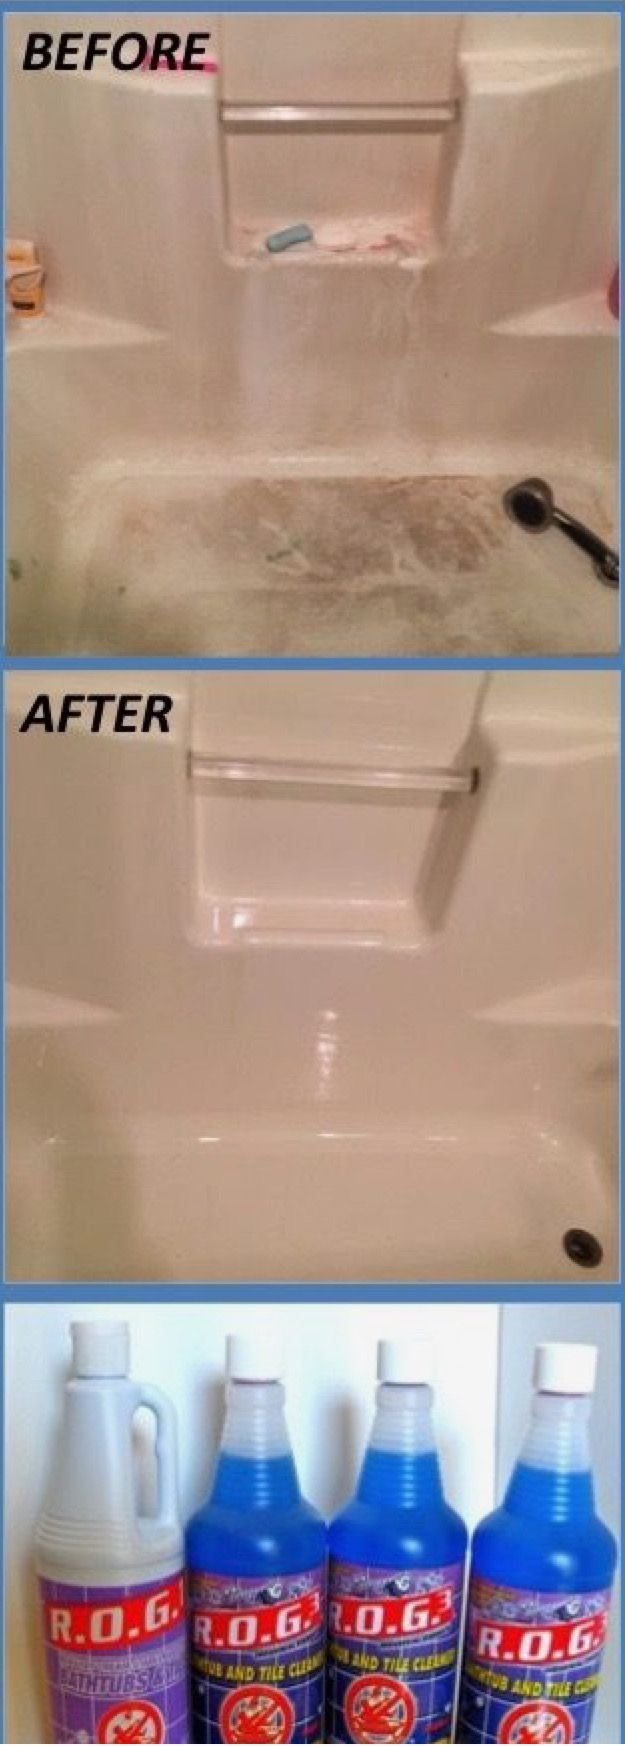 Best fiberglass cleaner | Cleaning fiberglass tub, Shower cleaner